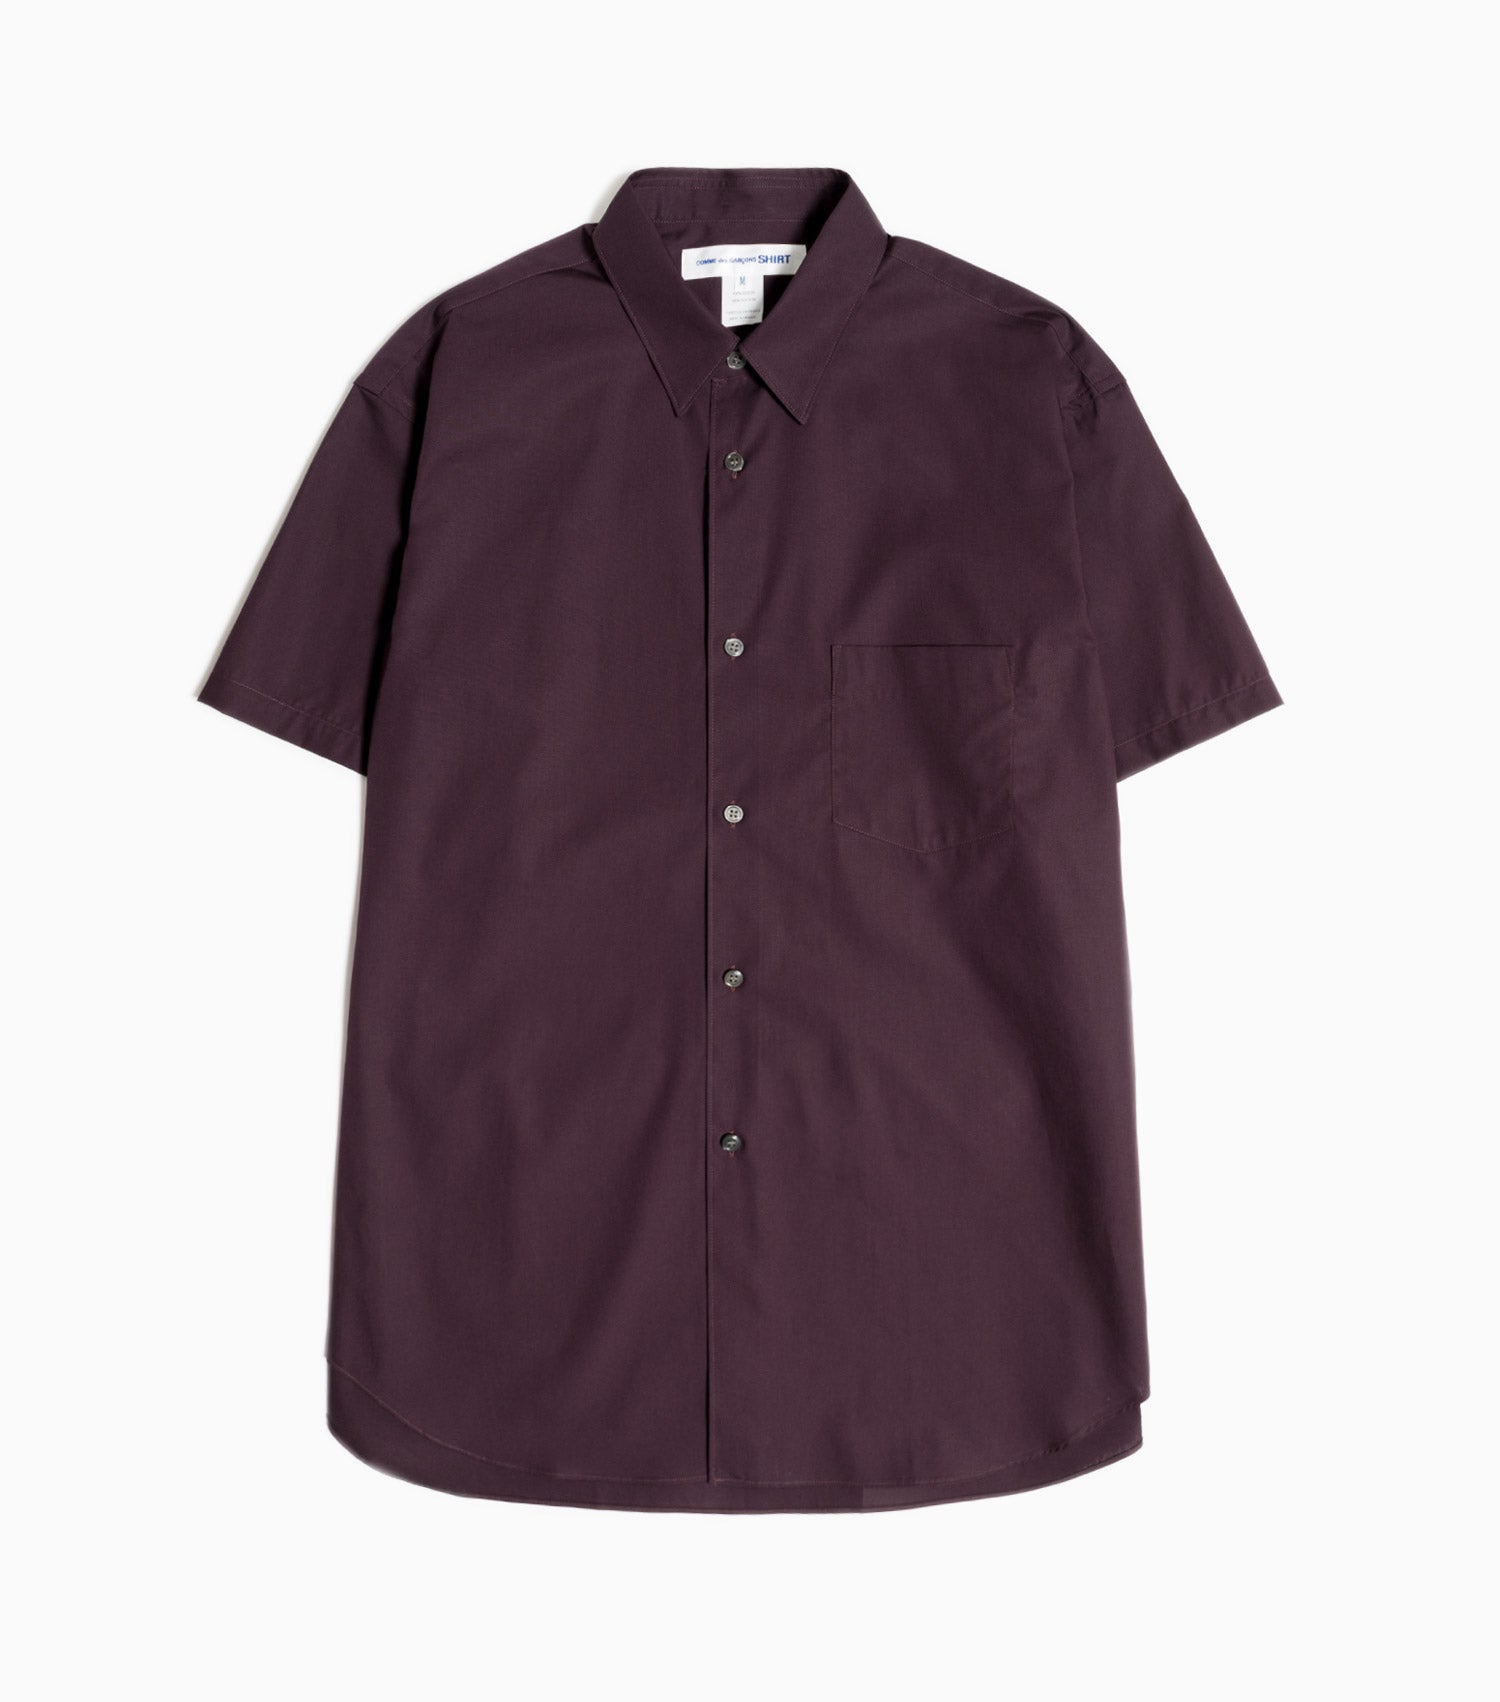 Comme des Garçons Shirt Forever Short Sleeved Plain Poplin Shirt - Burgundy Shirt - CARTOCON